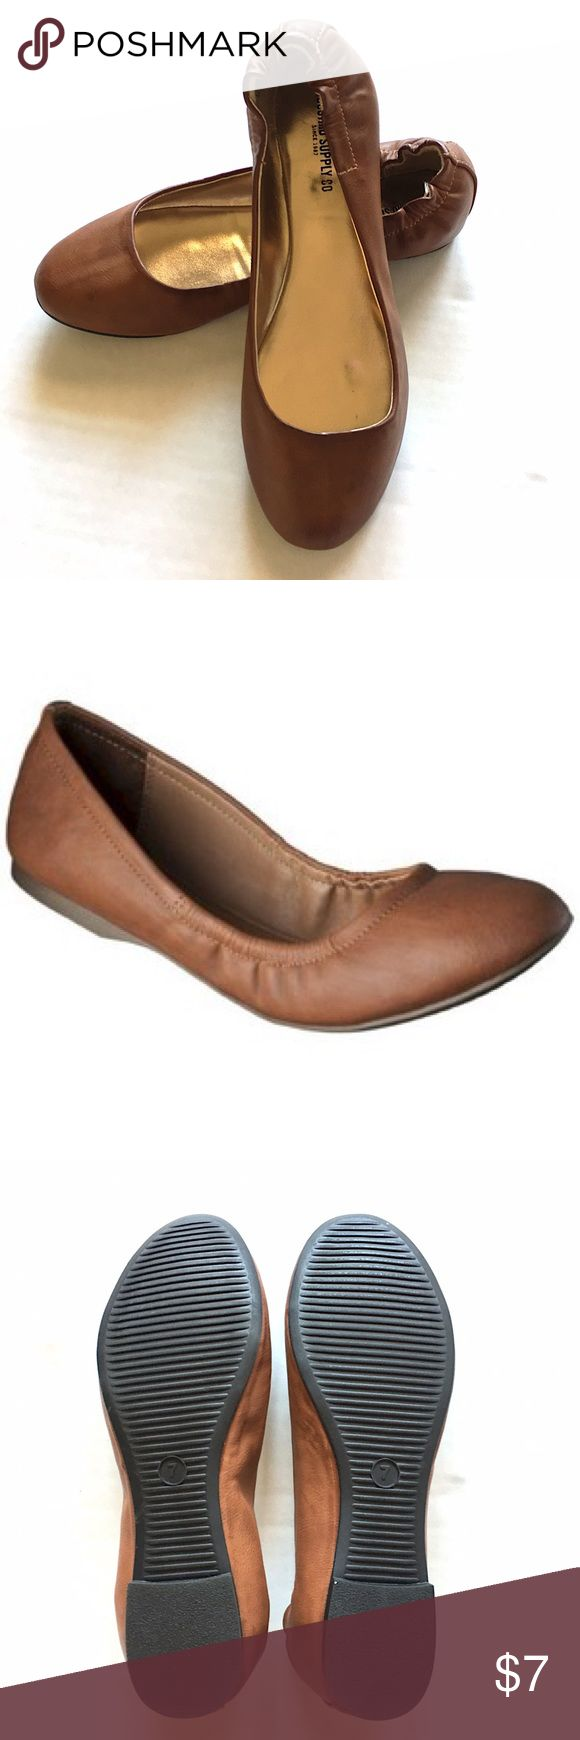 NWOT Mossimo Supply Co. Cognac Brown Ballet Flats NWOT Mossimo Cognac Brown Ballet w/Elastic Back Flats//Size 7//Never Worn👍🏻 + Great Condition! Mossimo Supply Co. Shoes Flats & Loafers